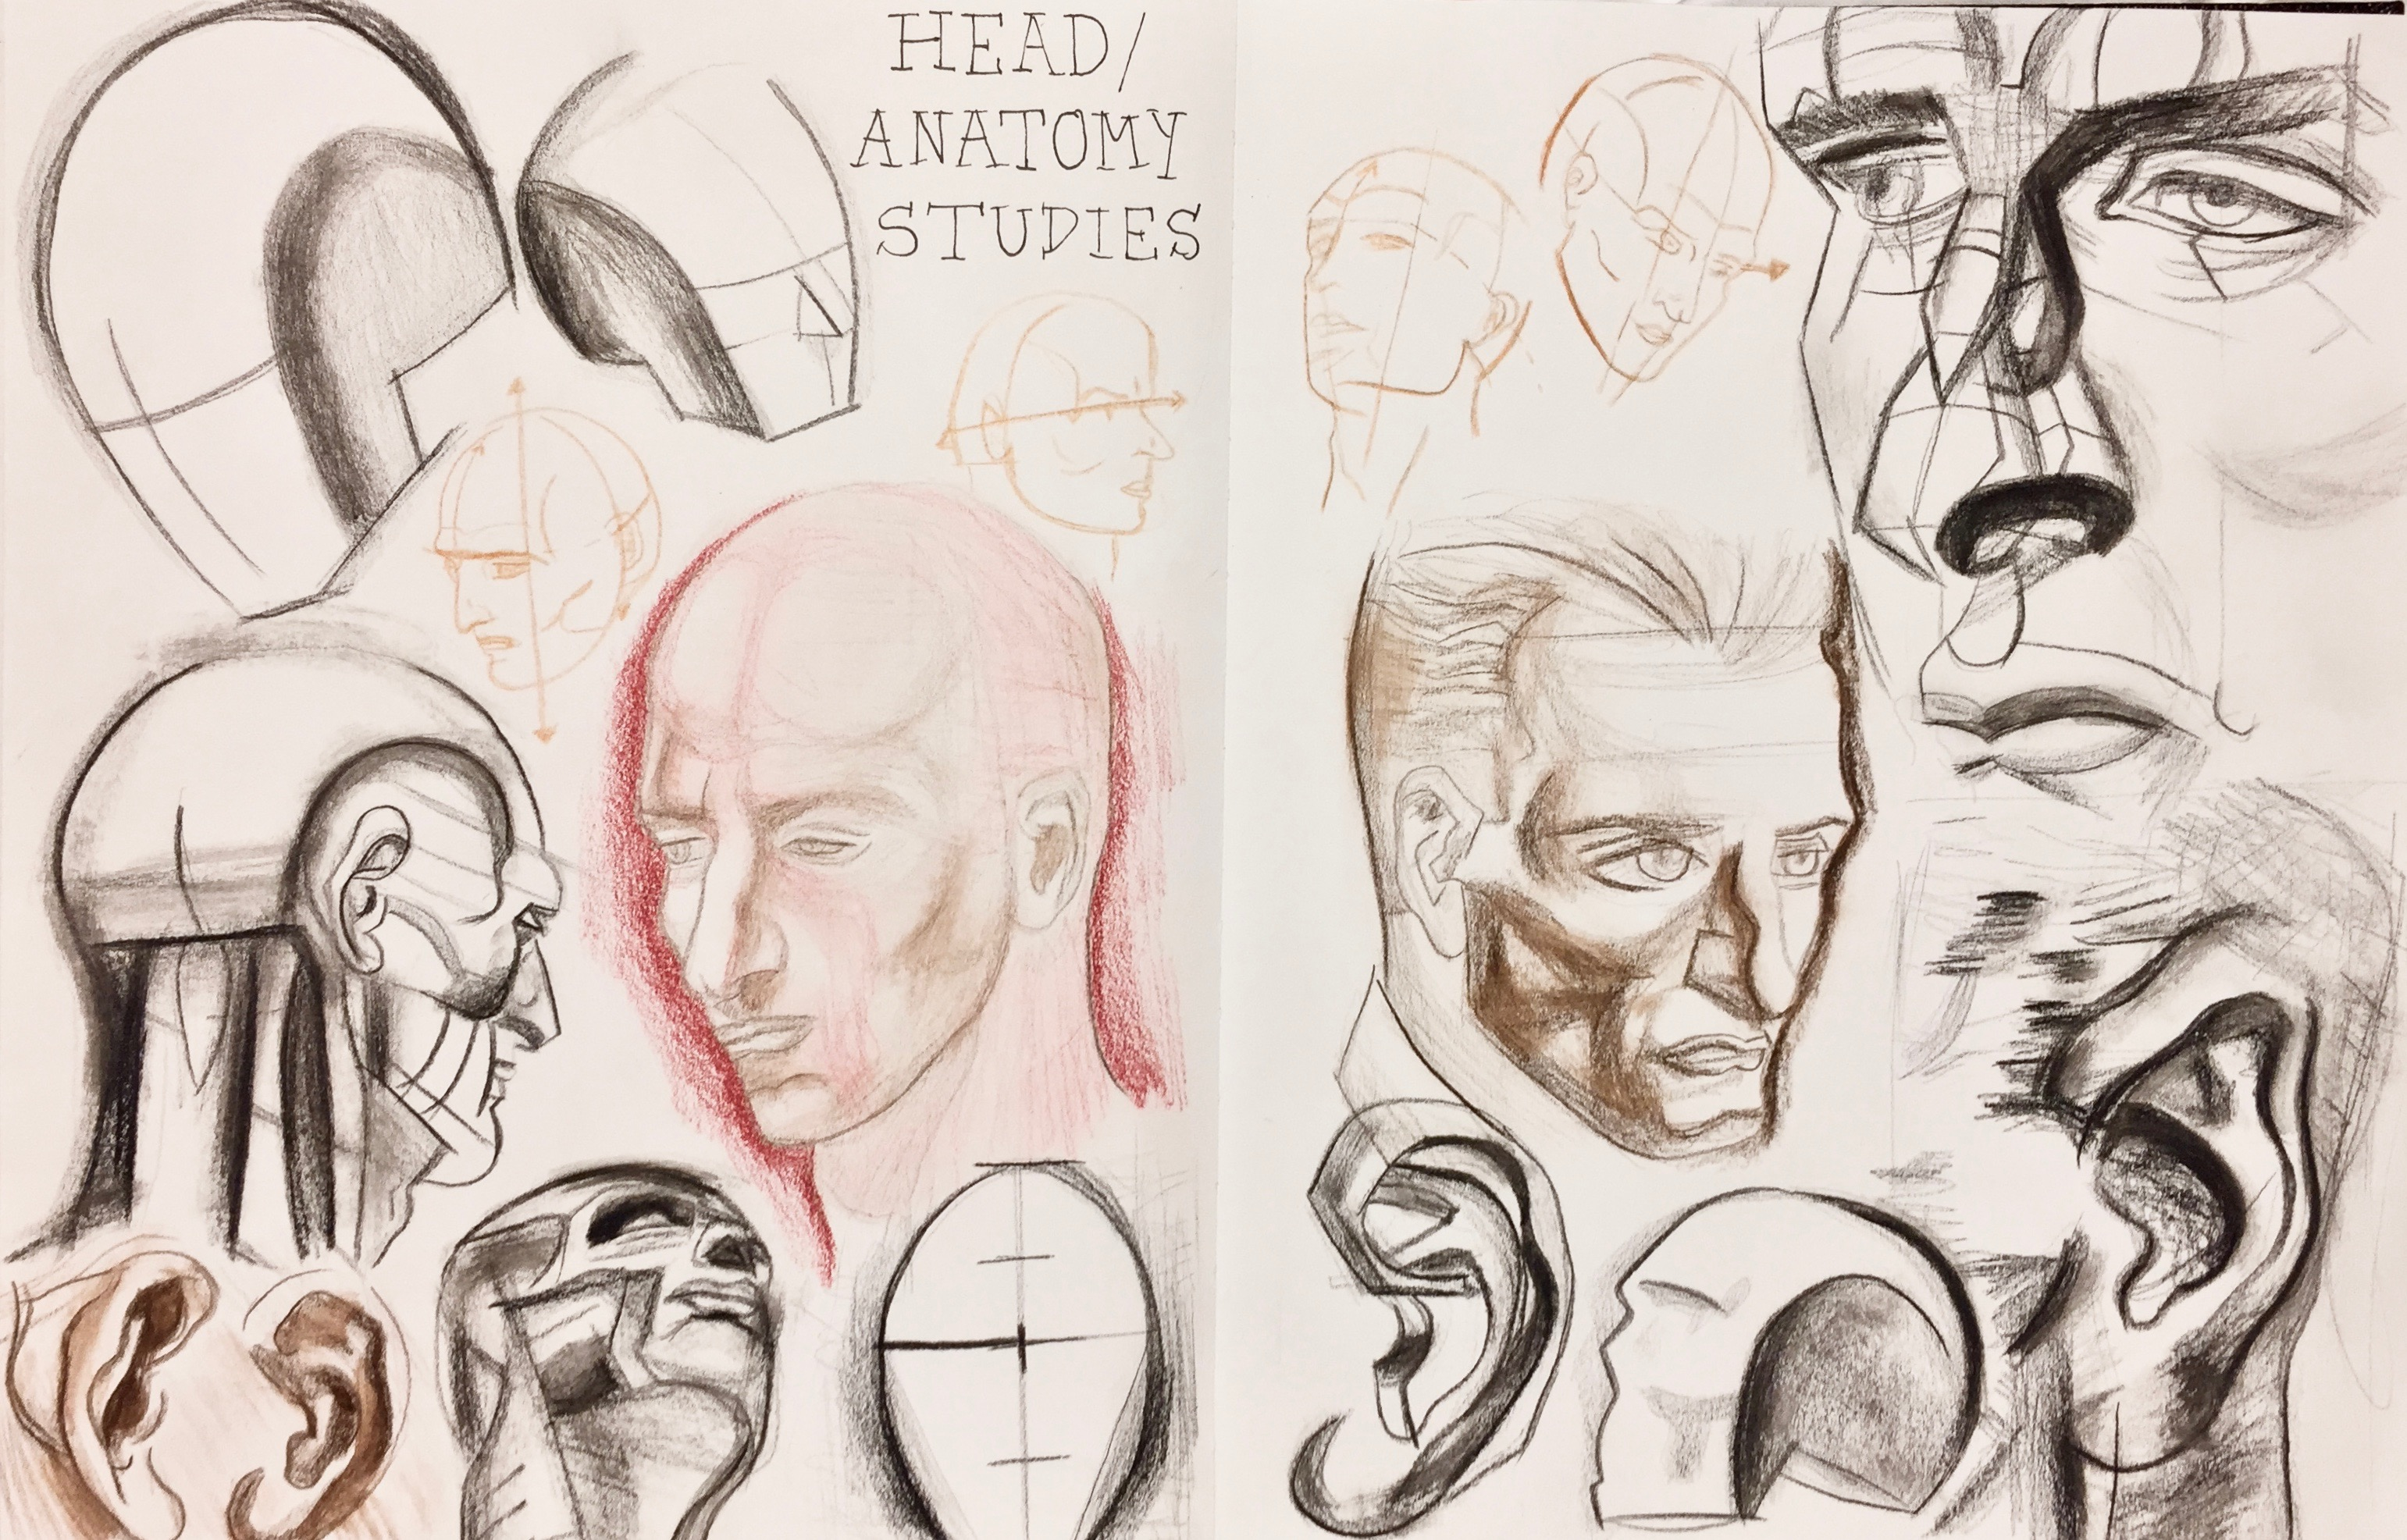 Head/Anatomy Sketchbook Study